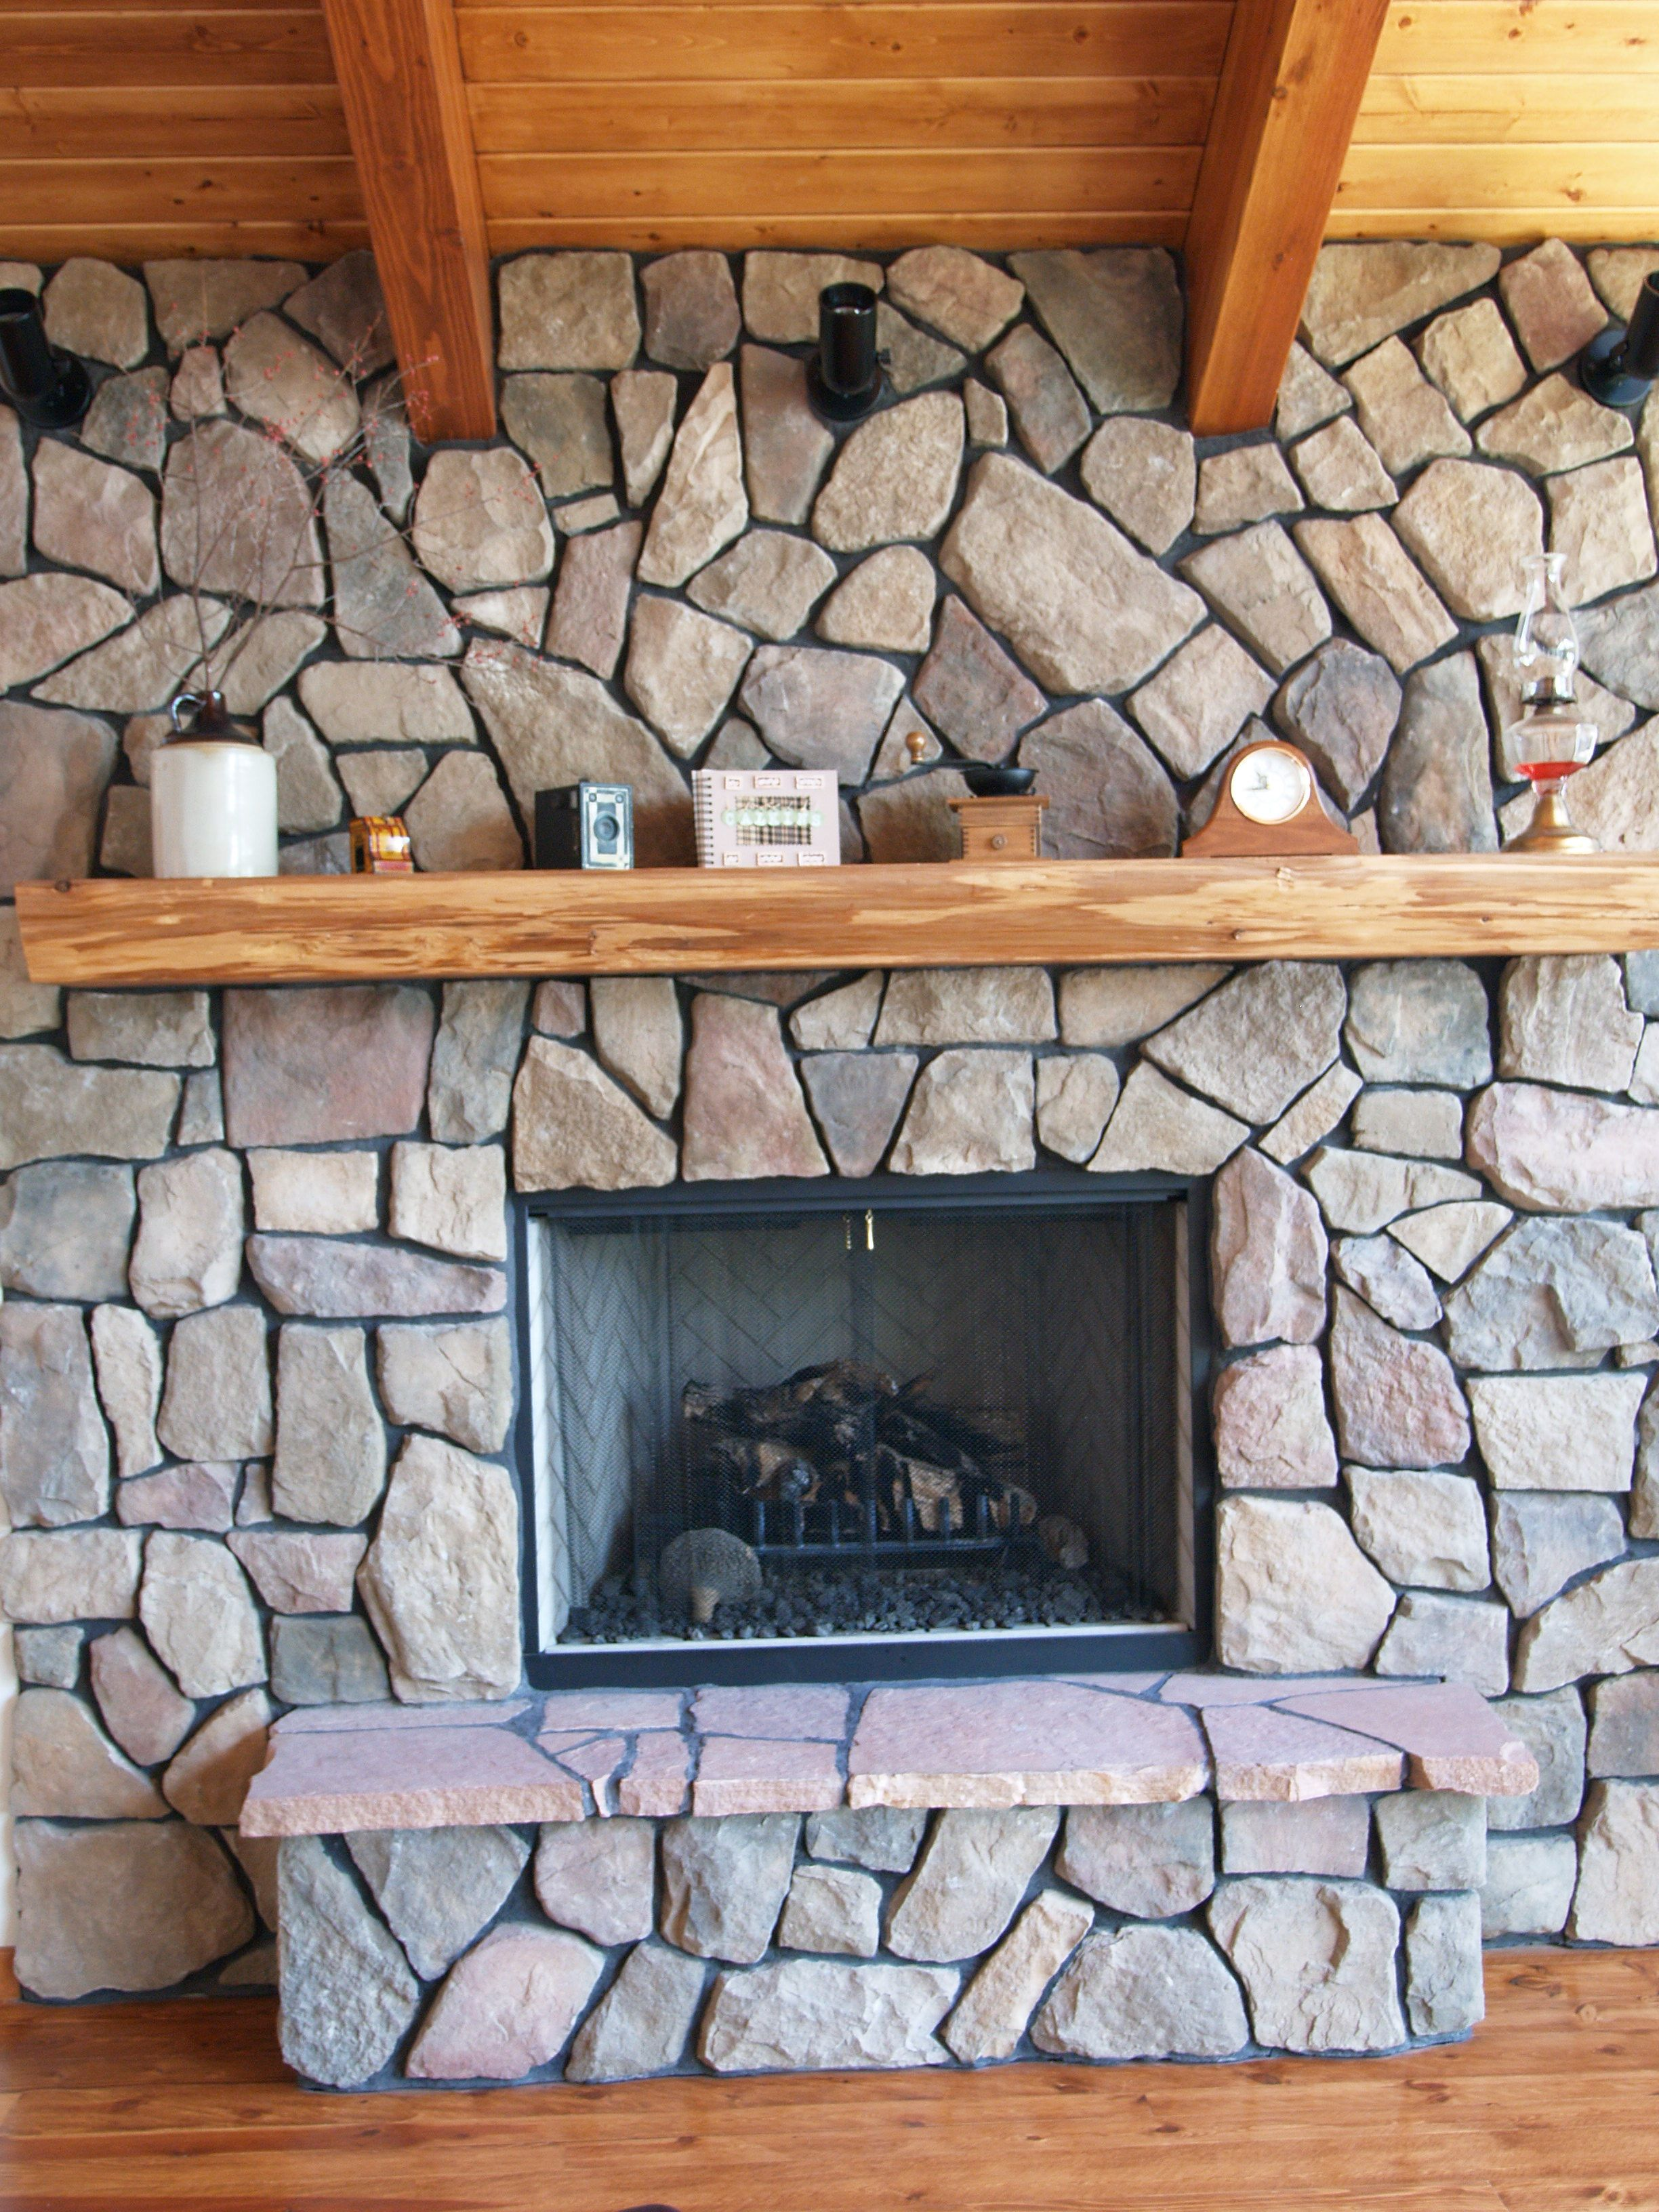 A split stone fireplace in one of our Custom Homes. A fireplace really adds to the 'feel' of a custom built home. - I would like you to know our commitment to our clients isn't only during the construction period. We support their needs well after the sale too. An example of this is our Facebook page. Feel free to check it out for useful tips, tricks & maintenance reminders. - John